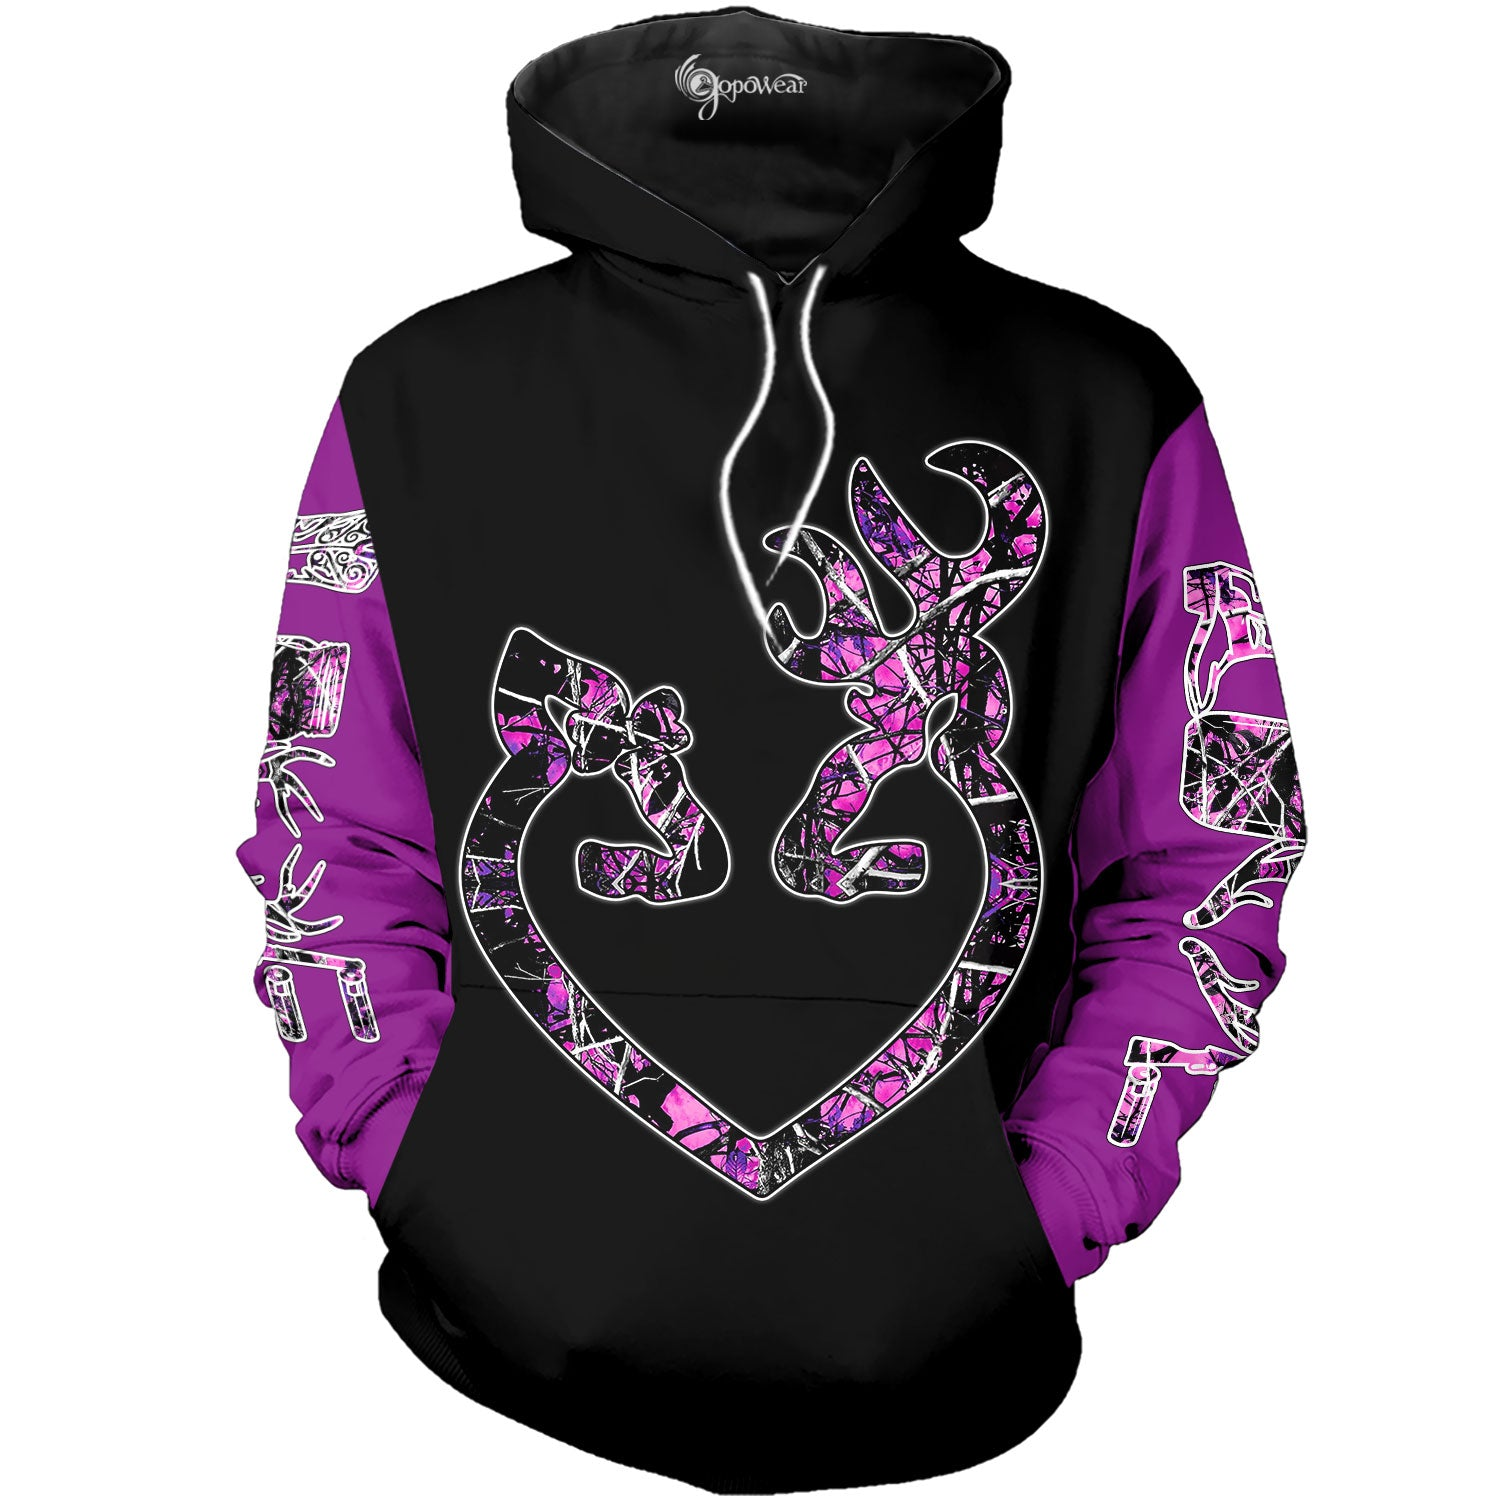 Gopowear Country Girls_Country Girl Pink Heart_SAG2005914_3d_hoodie.jpg